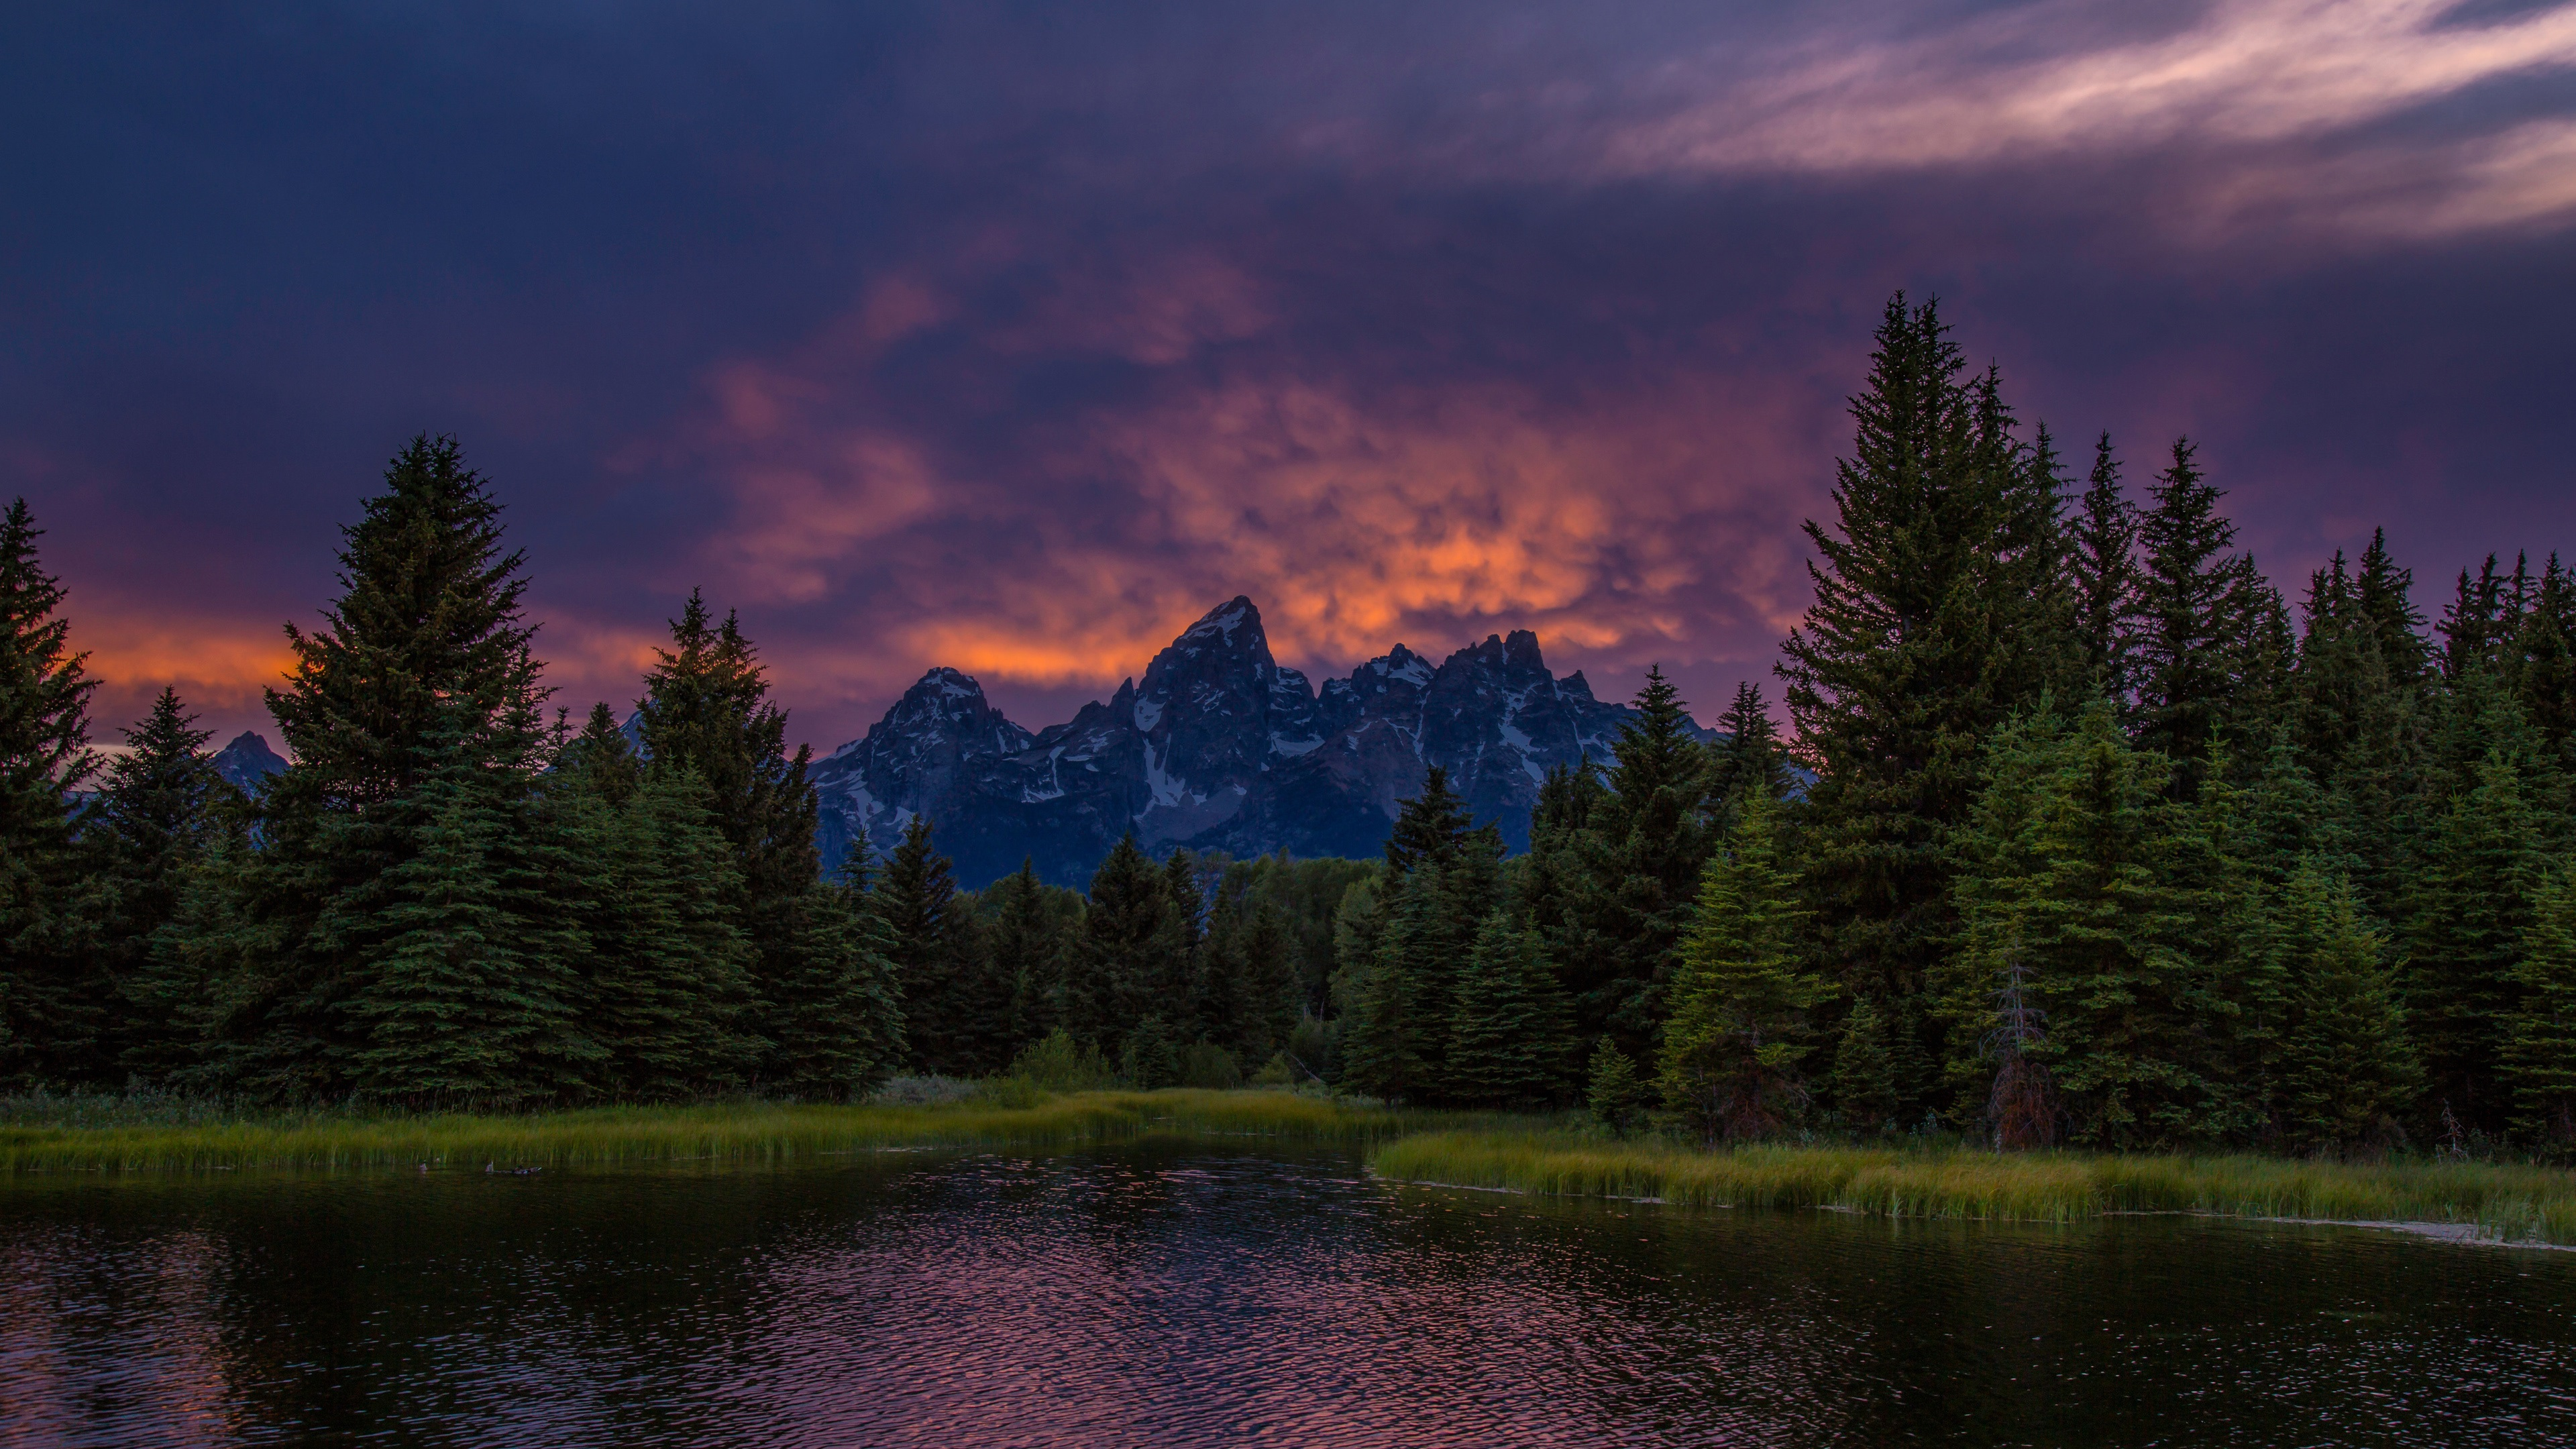 Part of the extensive palos trail system, maple lake includes a mountain bike staging area. Wallpaper Mountains Lake Forest Sunset Sky Clouds Dusk 3840x2160 Uhd 4k Picture Image